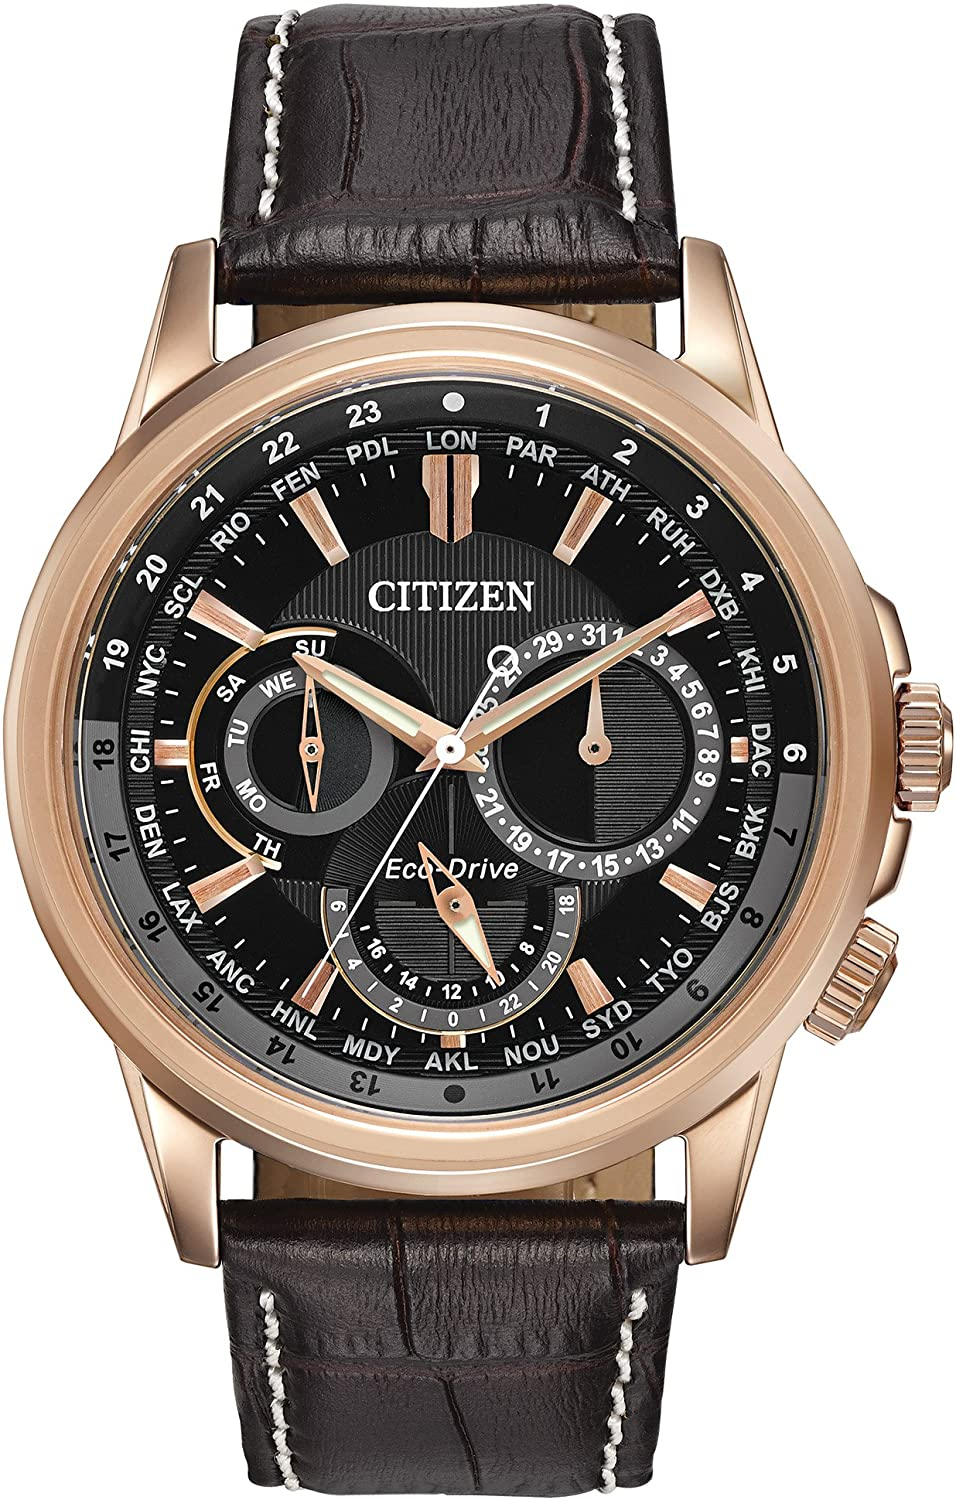 Citizen Men's Eco-Drive Stainless Steel Watch with Day/Date, BU2023-04E